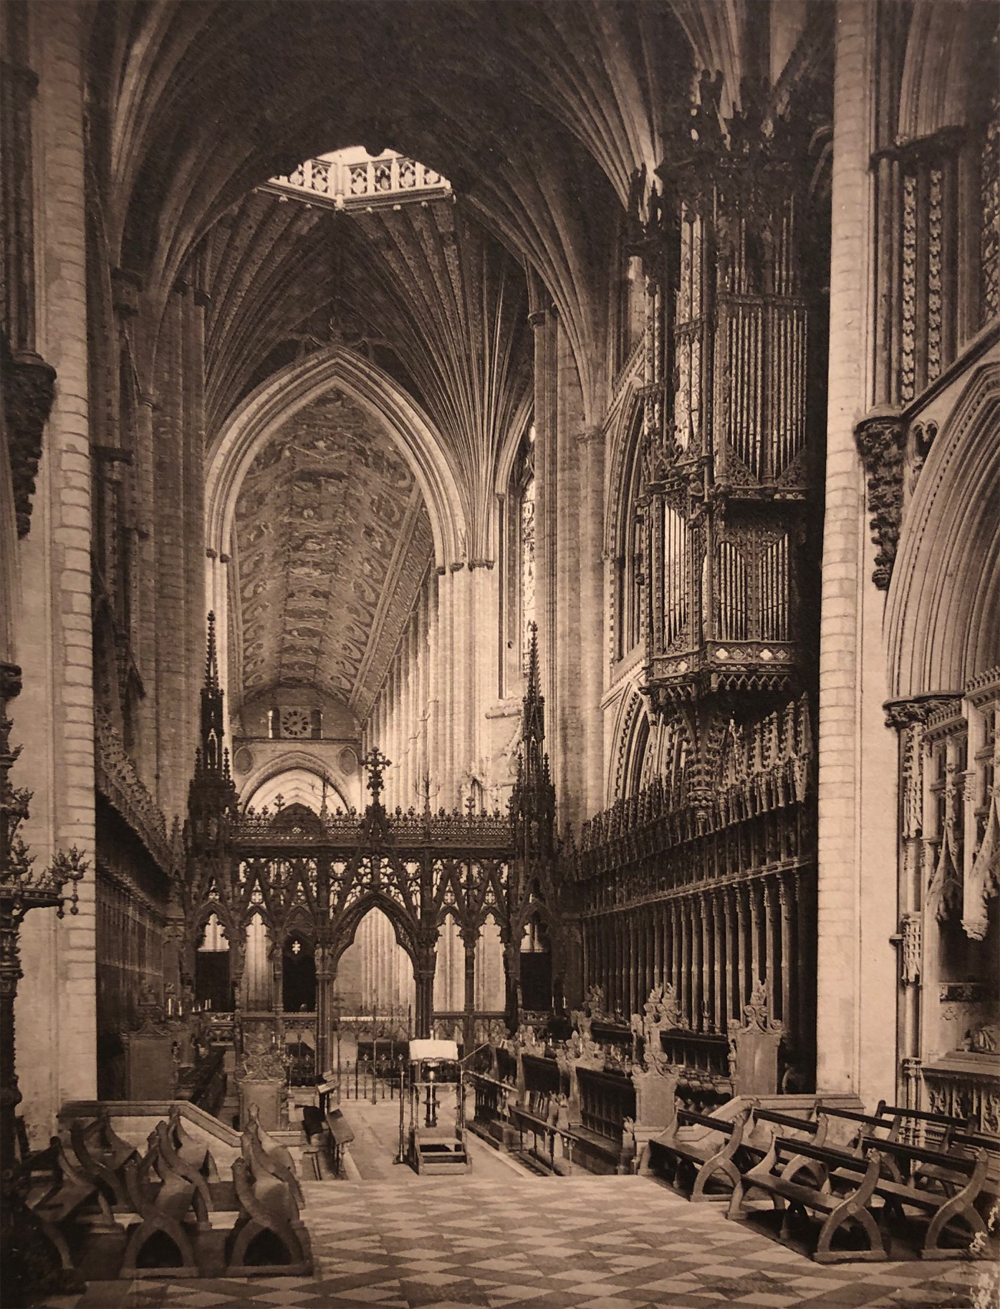 Frederick Evans, Ely Cathedral – Choir to West from Altar, 1891, platinum print, 5.625 x 4.5 inches, signed by artist in pencil, recto, price on request